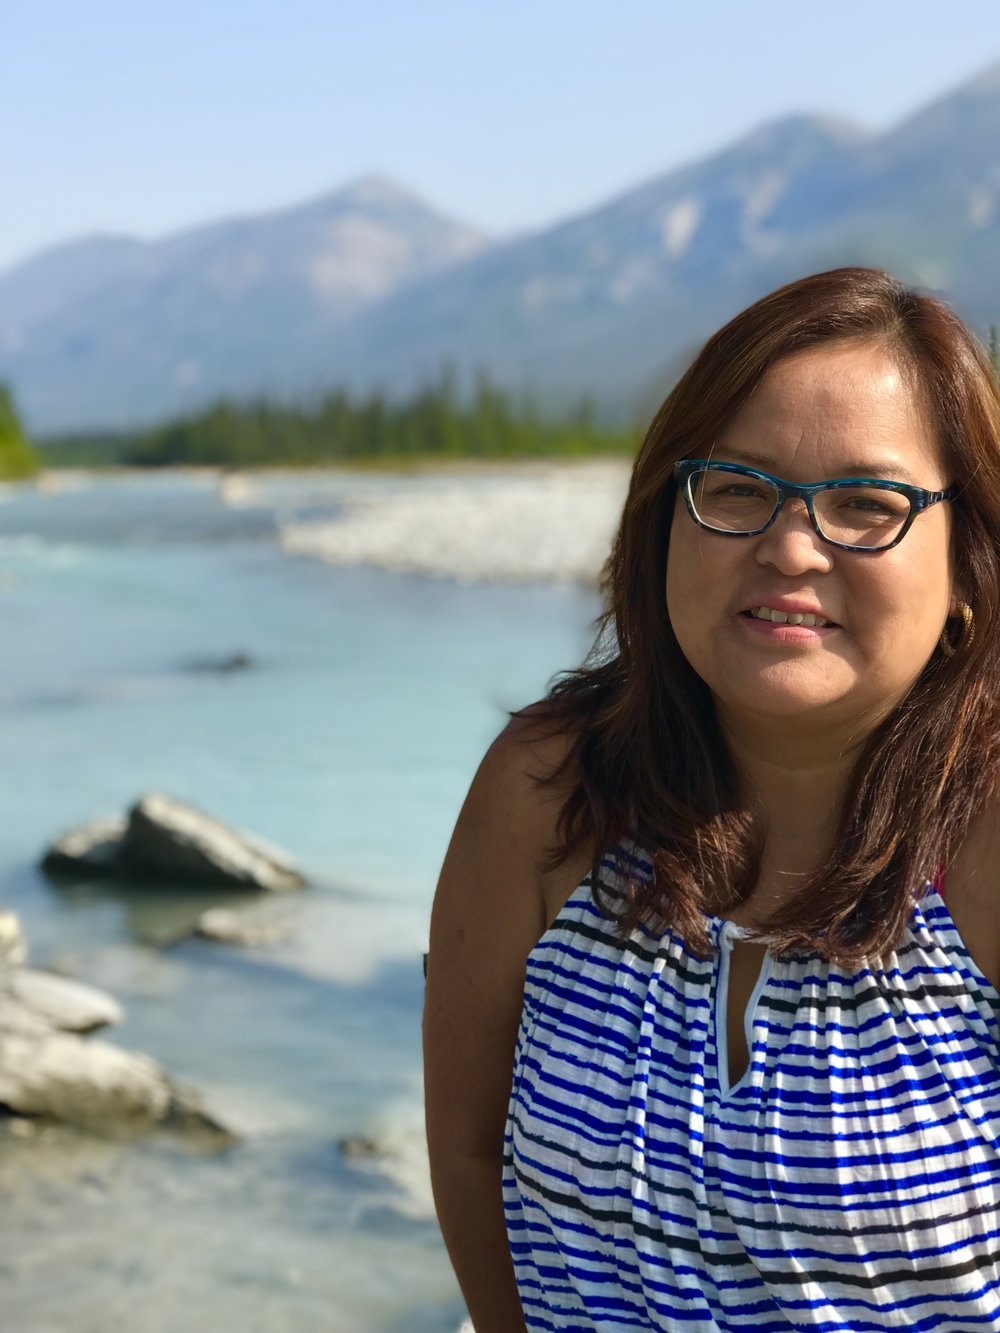 Tania Cameron - Tania Cameron is a member of the Dalles First Nation in the Treaty #3 territory. Tania is a local activist and was a community organizer in the grassroots movement of Idle No More in Kenora. Tania also supported efforts to stop Energy East pipeline in the Treaty #3 territory. As well, Tania coordinated a successful campaign to help Indigenous people register and vote in the 2015 federal election with First Nations Rock the Vote.Tania is committed to the advancement of the Aboriginal community which reflects her career over the last 20 years working with local First Nations communities and organizations. She currently works for the Aboriginal Sport and Wellness Council of Ontario organizing sport for Indigenous youth in the northwestern Ontario region.Her education is in Aboriginal Self-Governance through Red River College in Winnipeg.